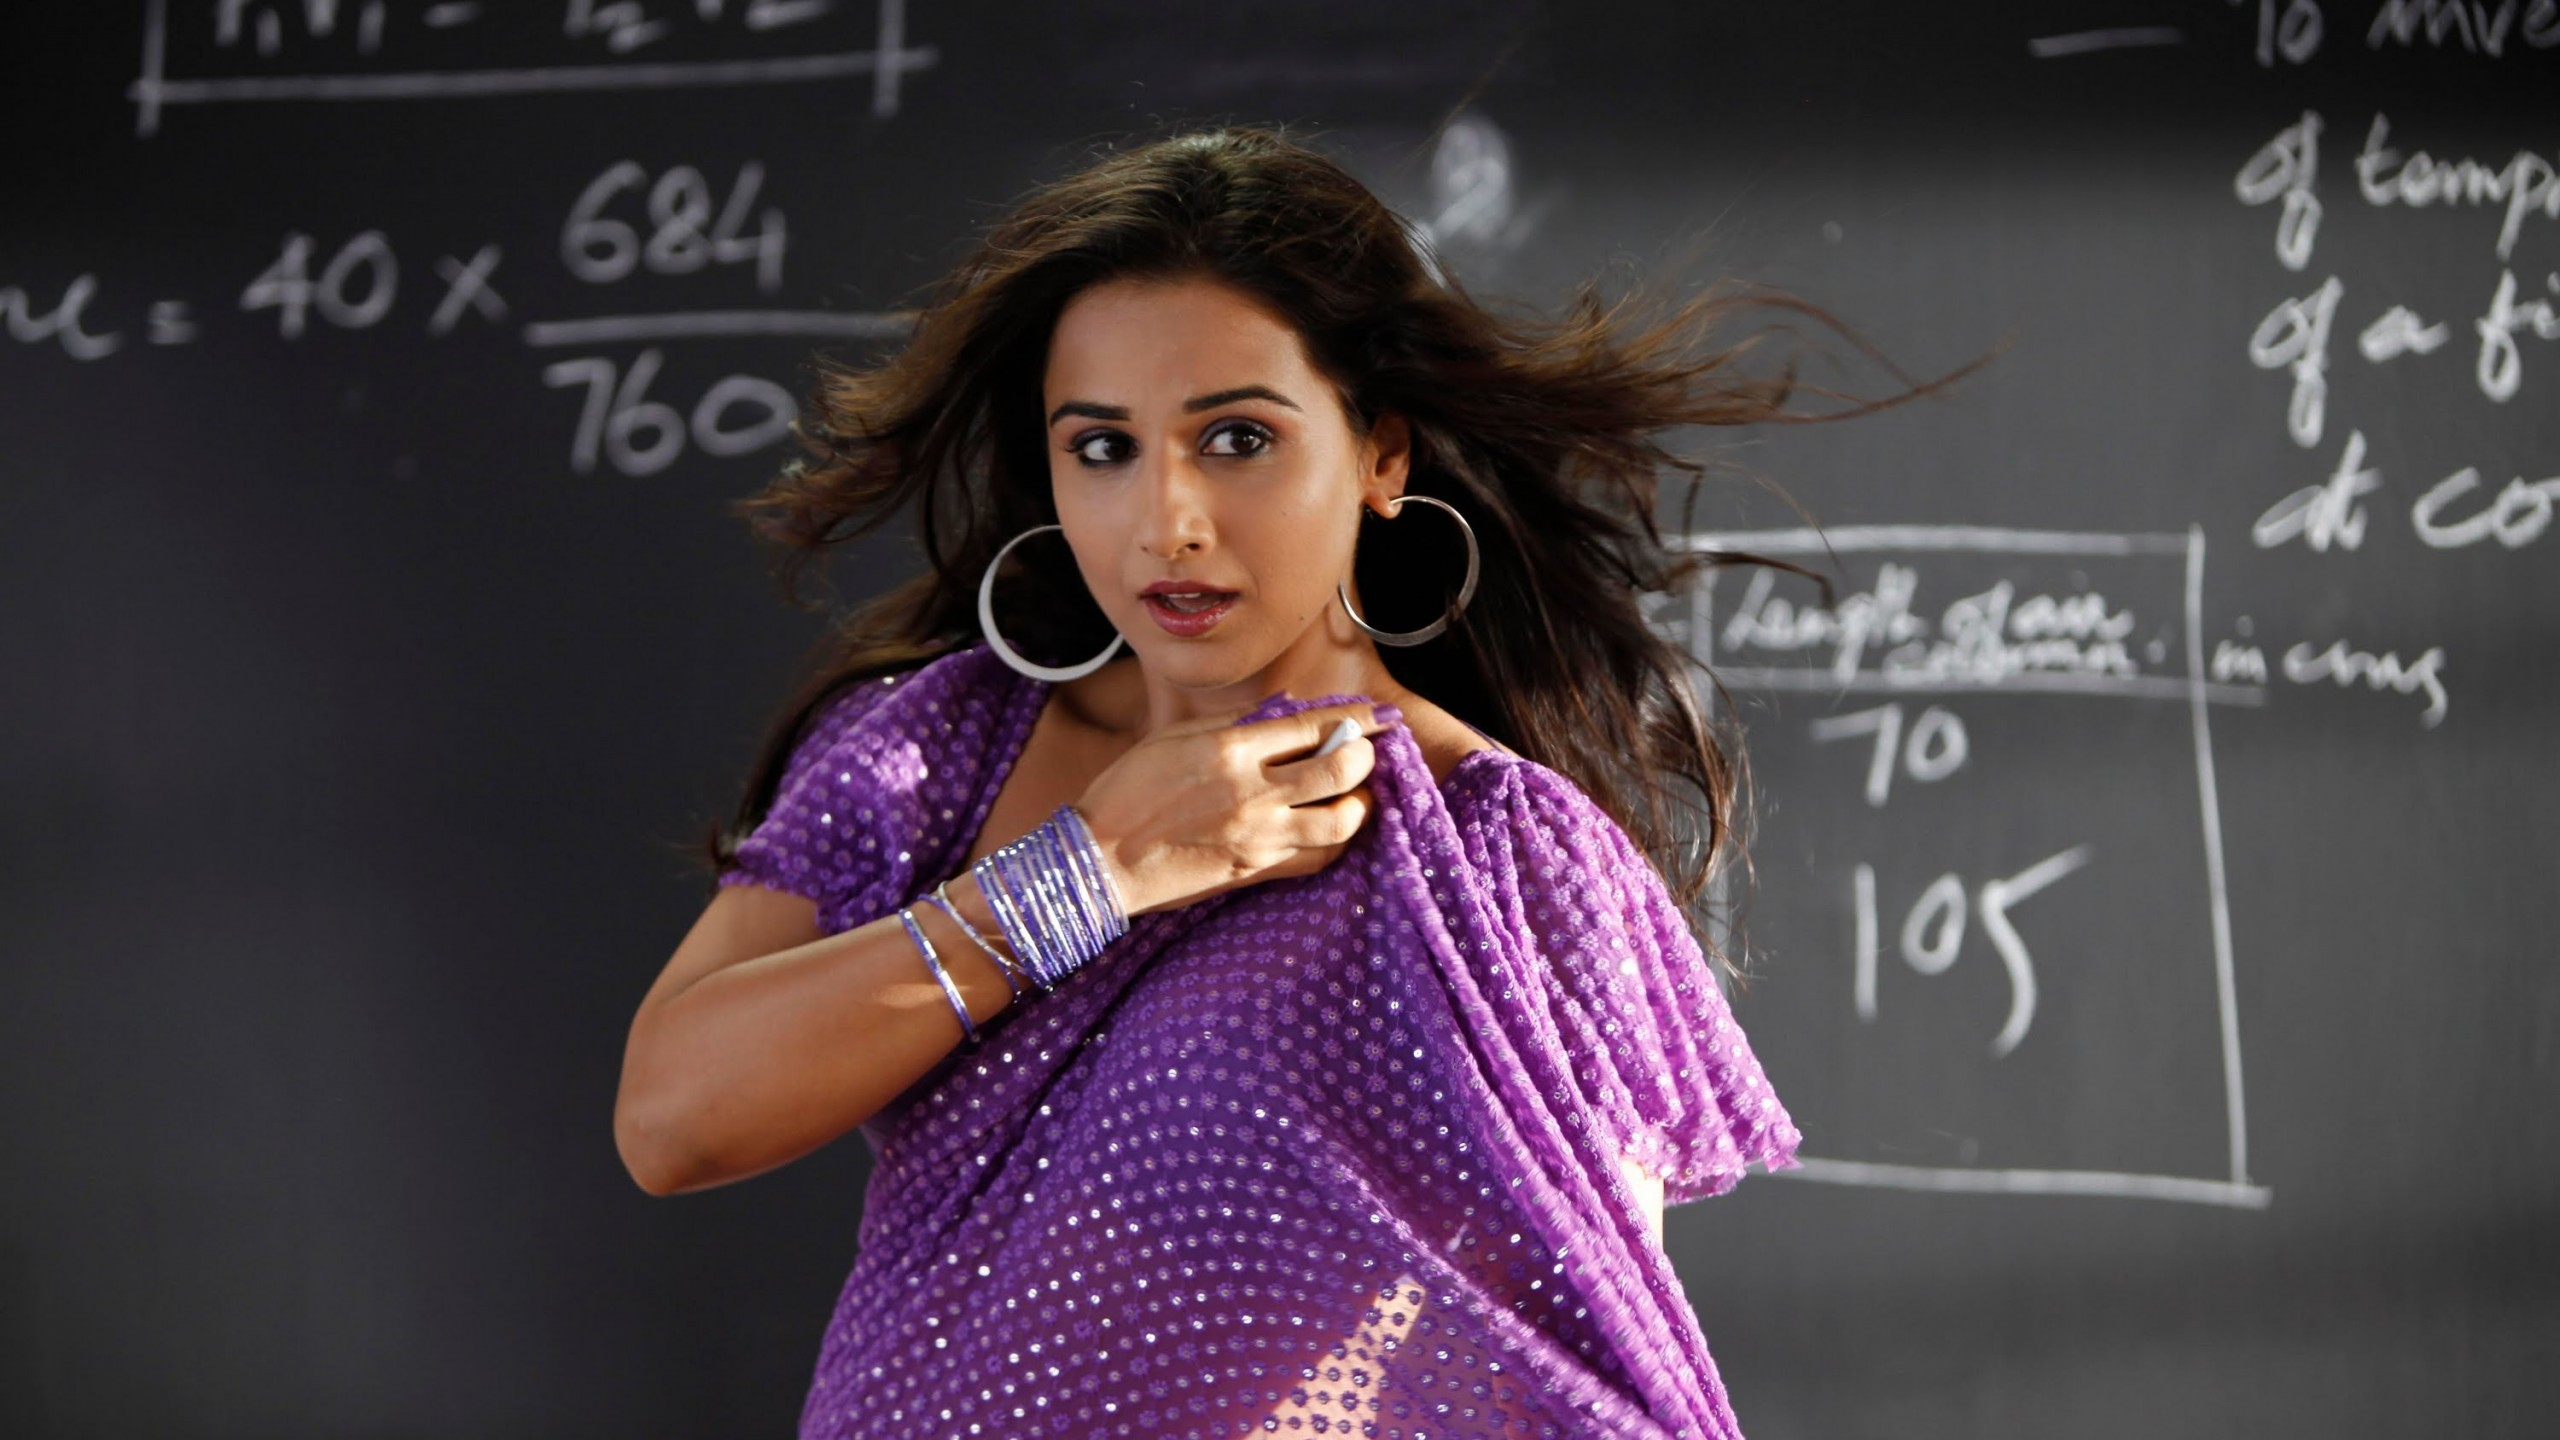 wallpaper vidya balan, 4k, photo, bollywood, celebrities #14398